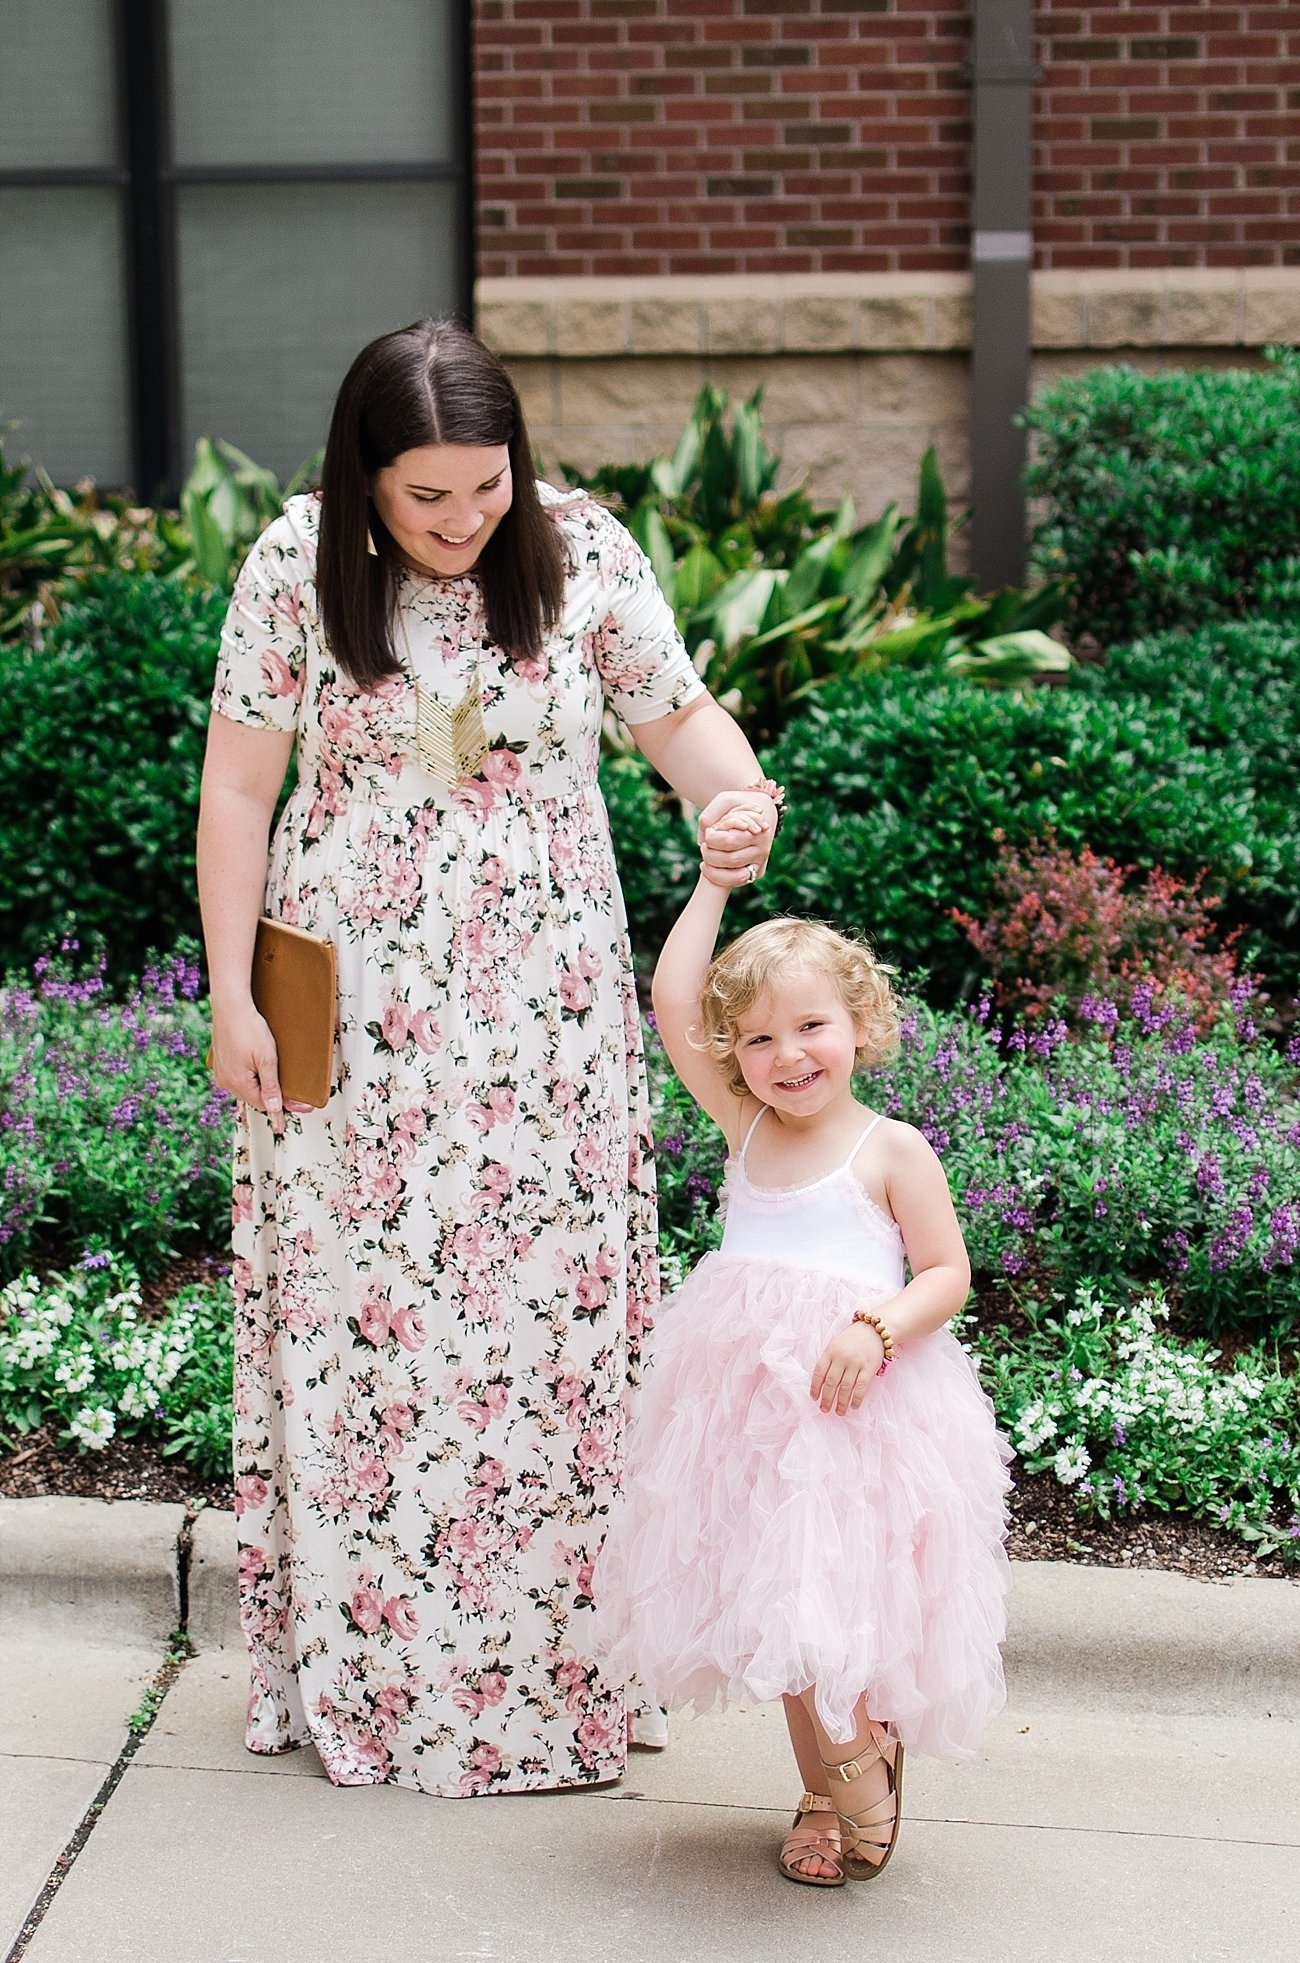 10 Amazing Mommy And Me Picture Ideas wedding guest outfit ethical fashion still being molly